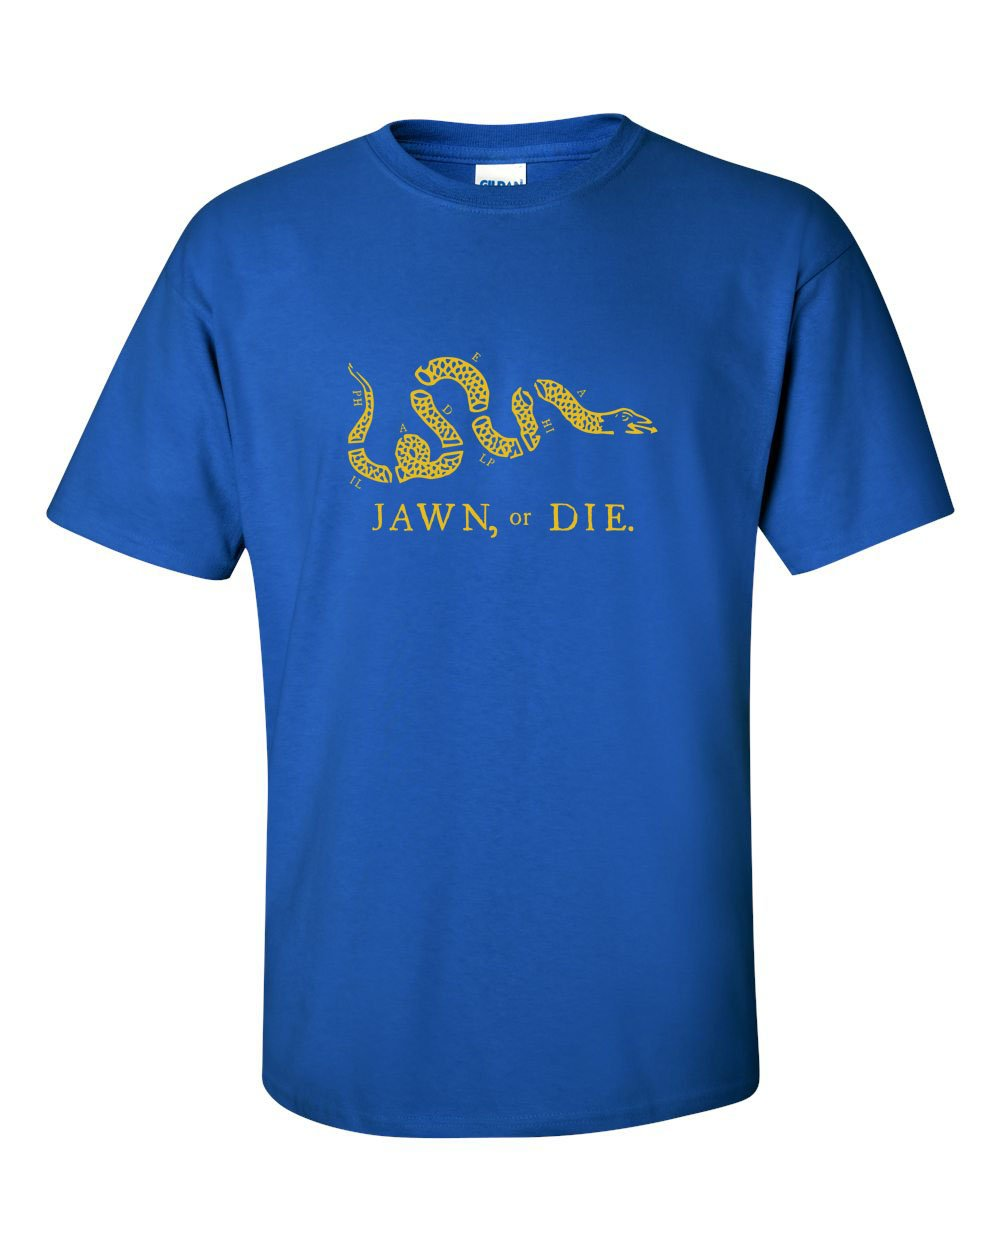 Jawn or Die Yellow Ink Mens/Unisex T-Shirt